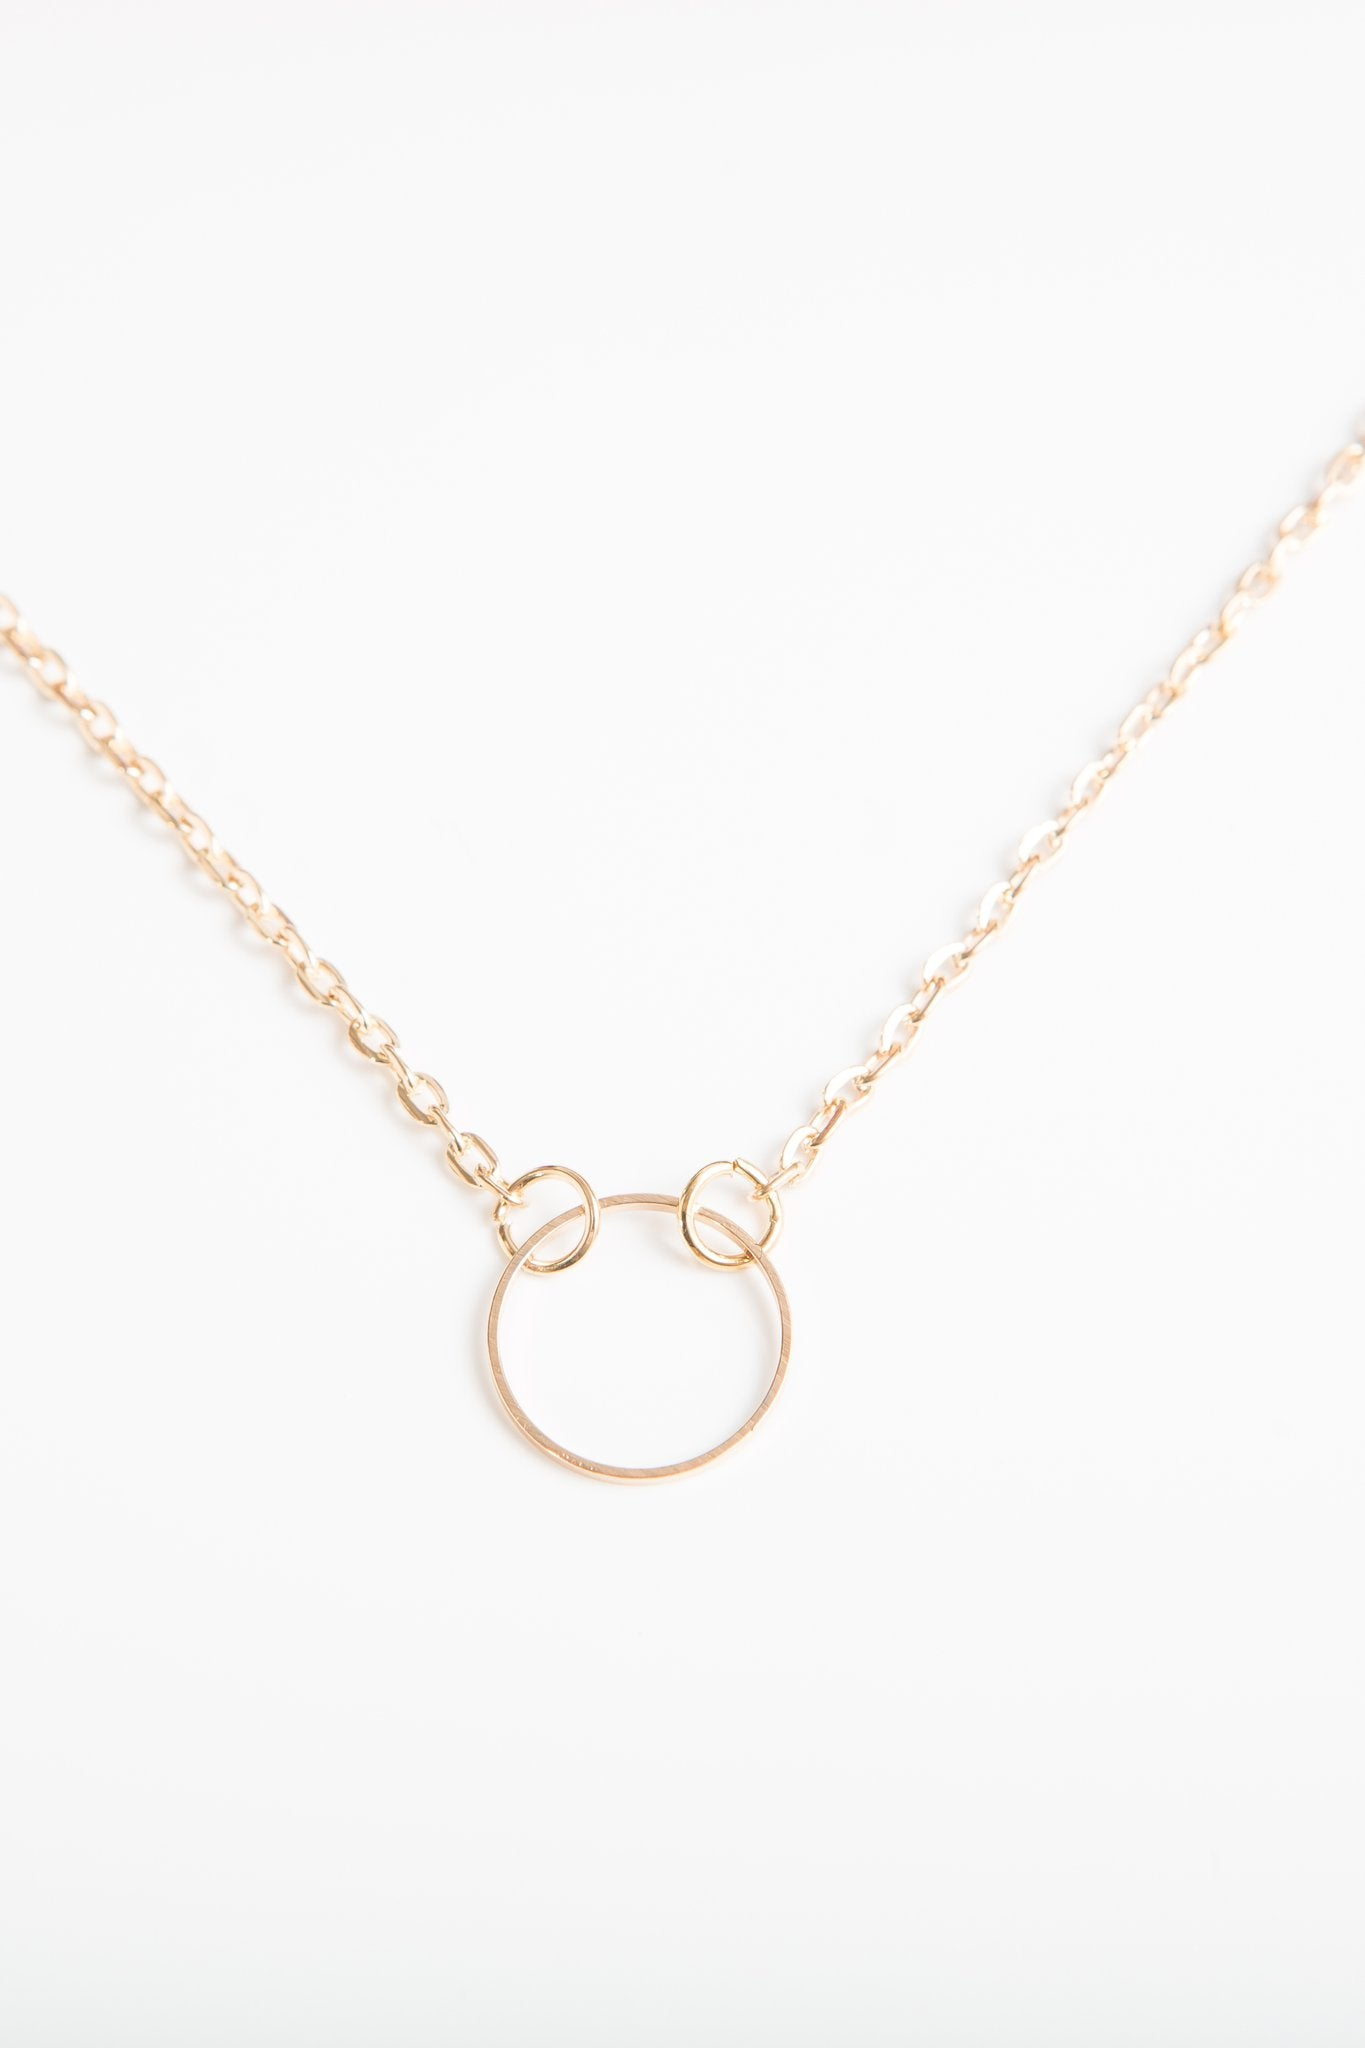 Short circle necklace in gold